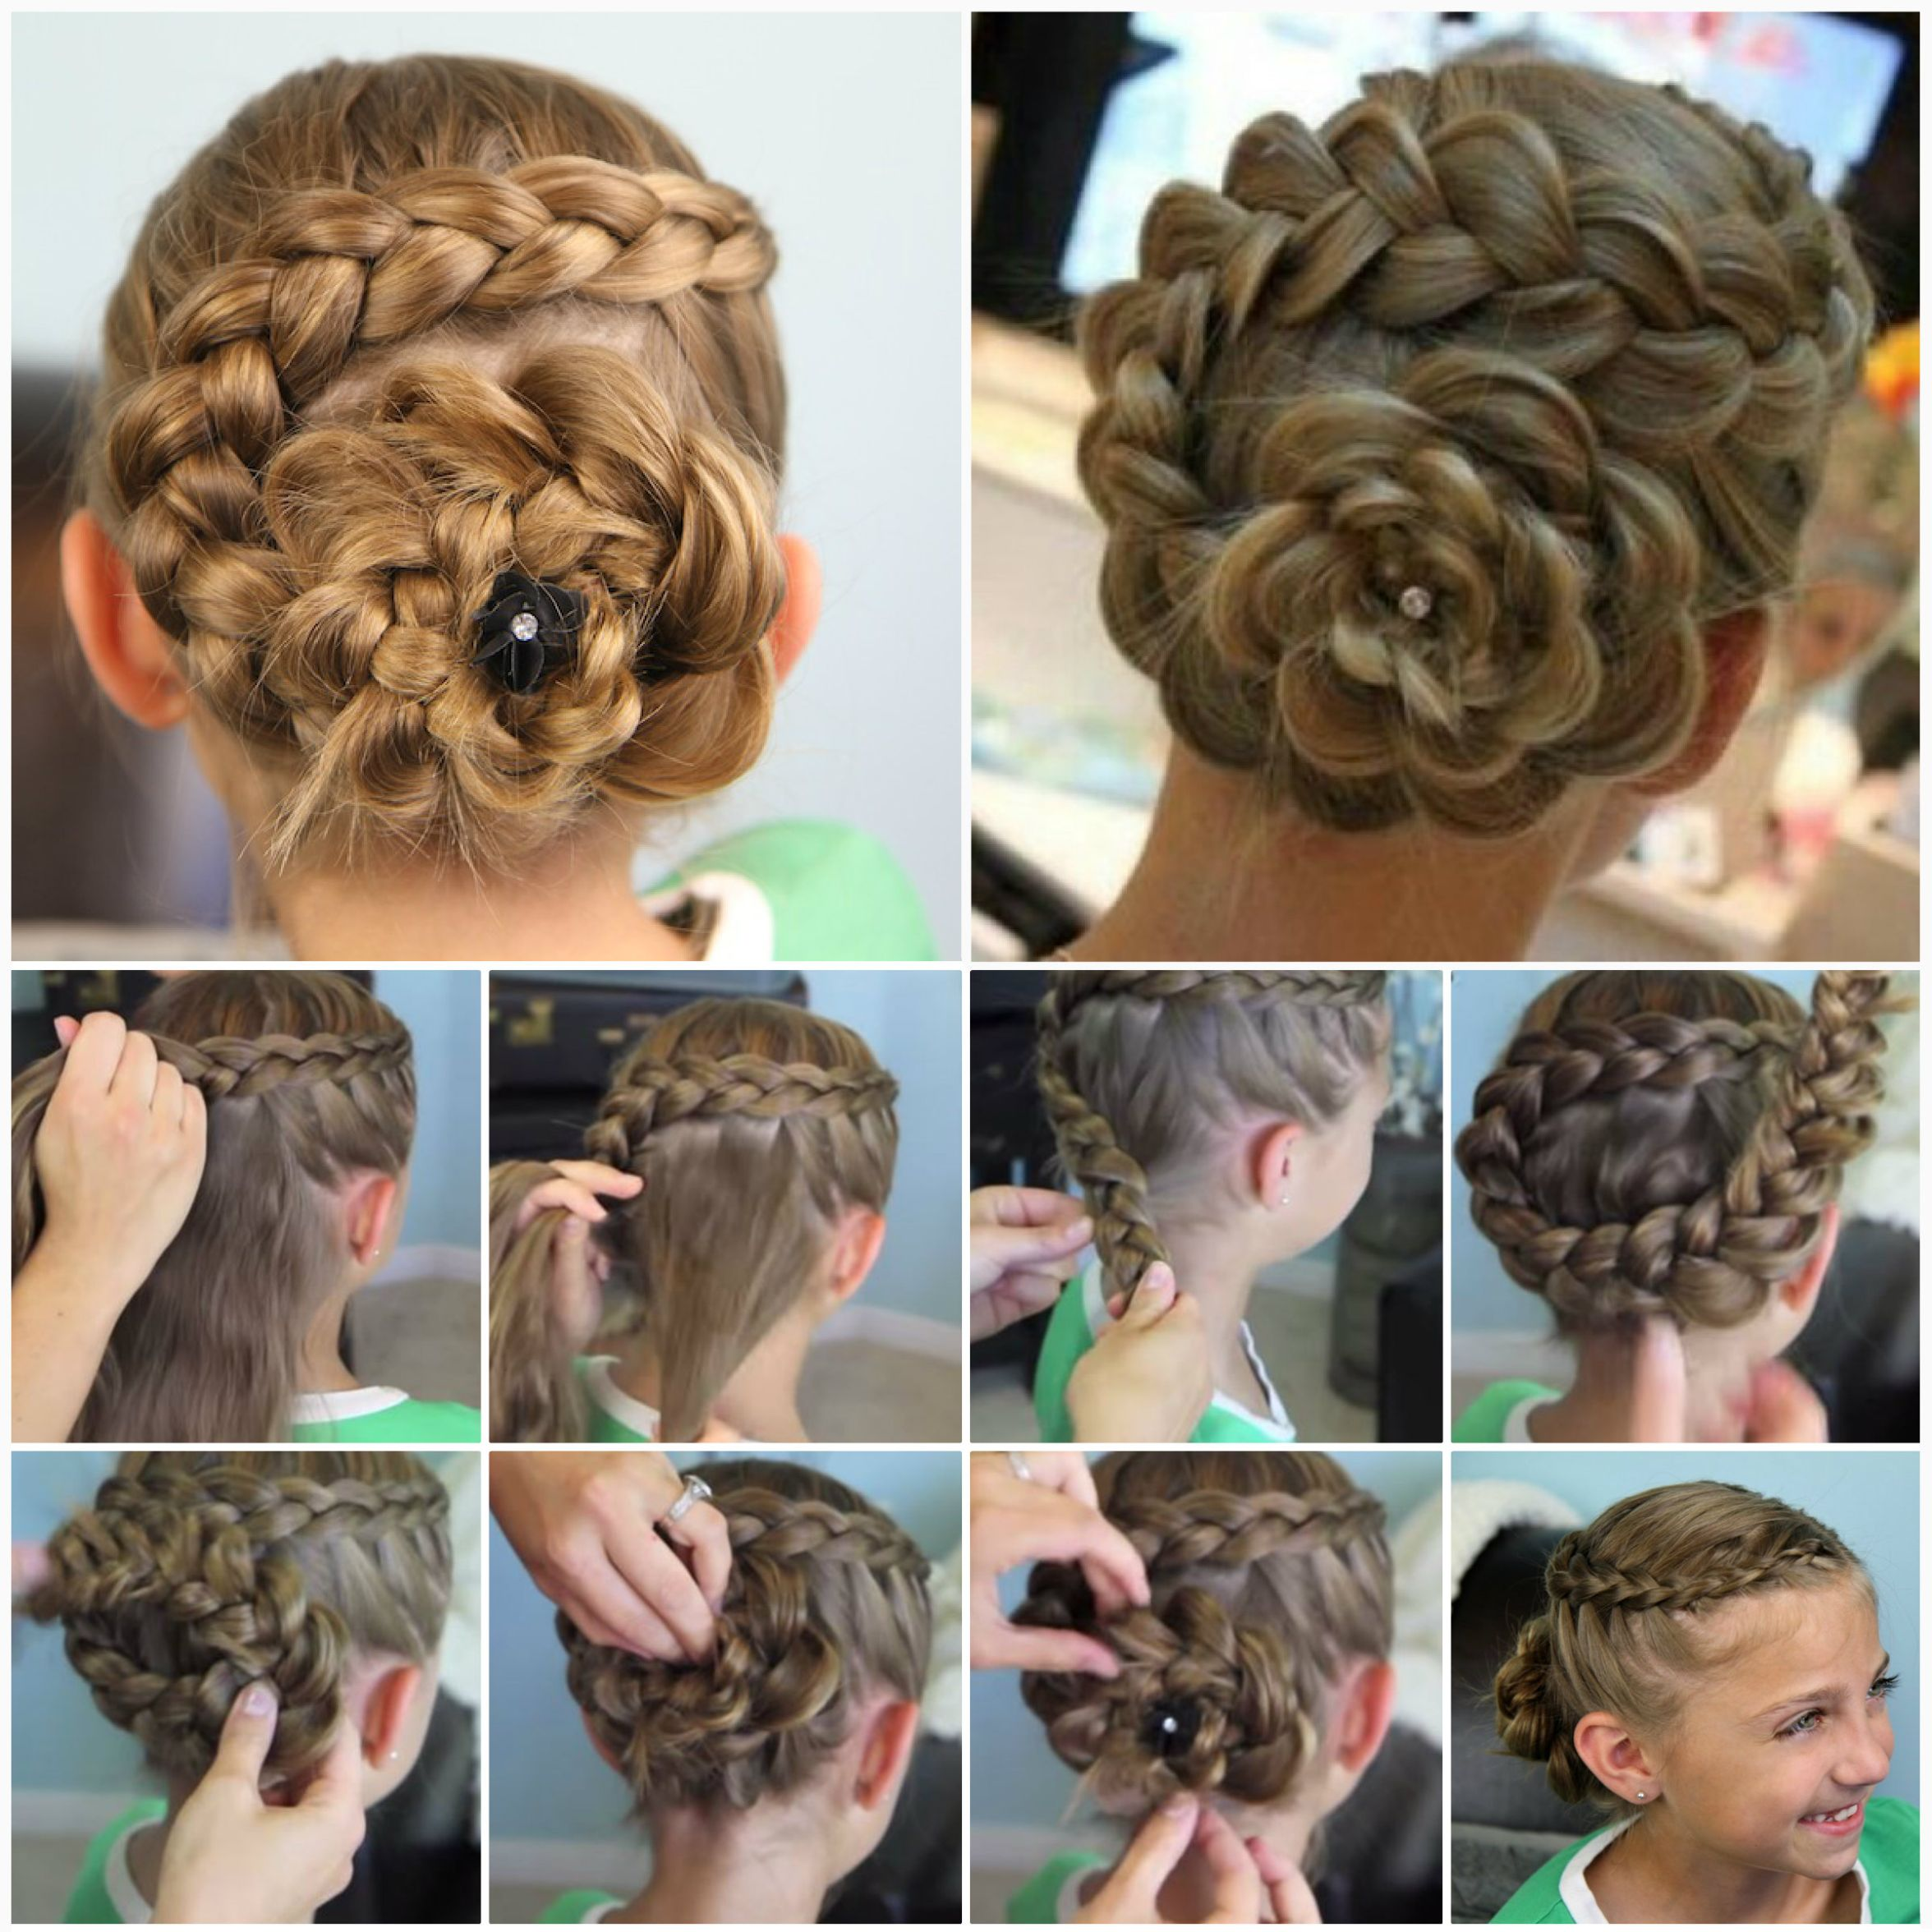 New Party Hair Style Without Makeup